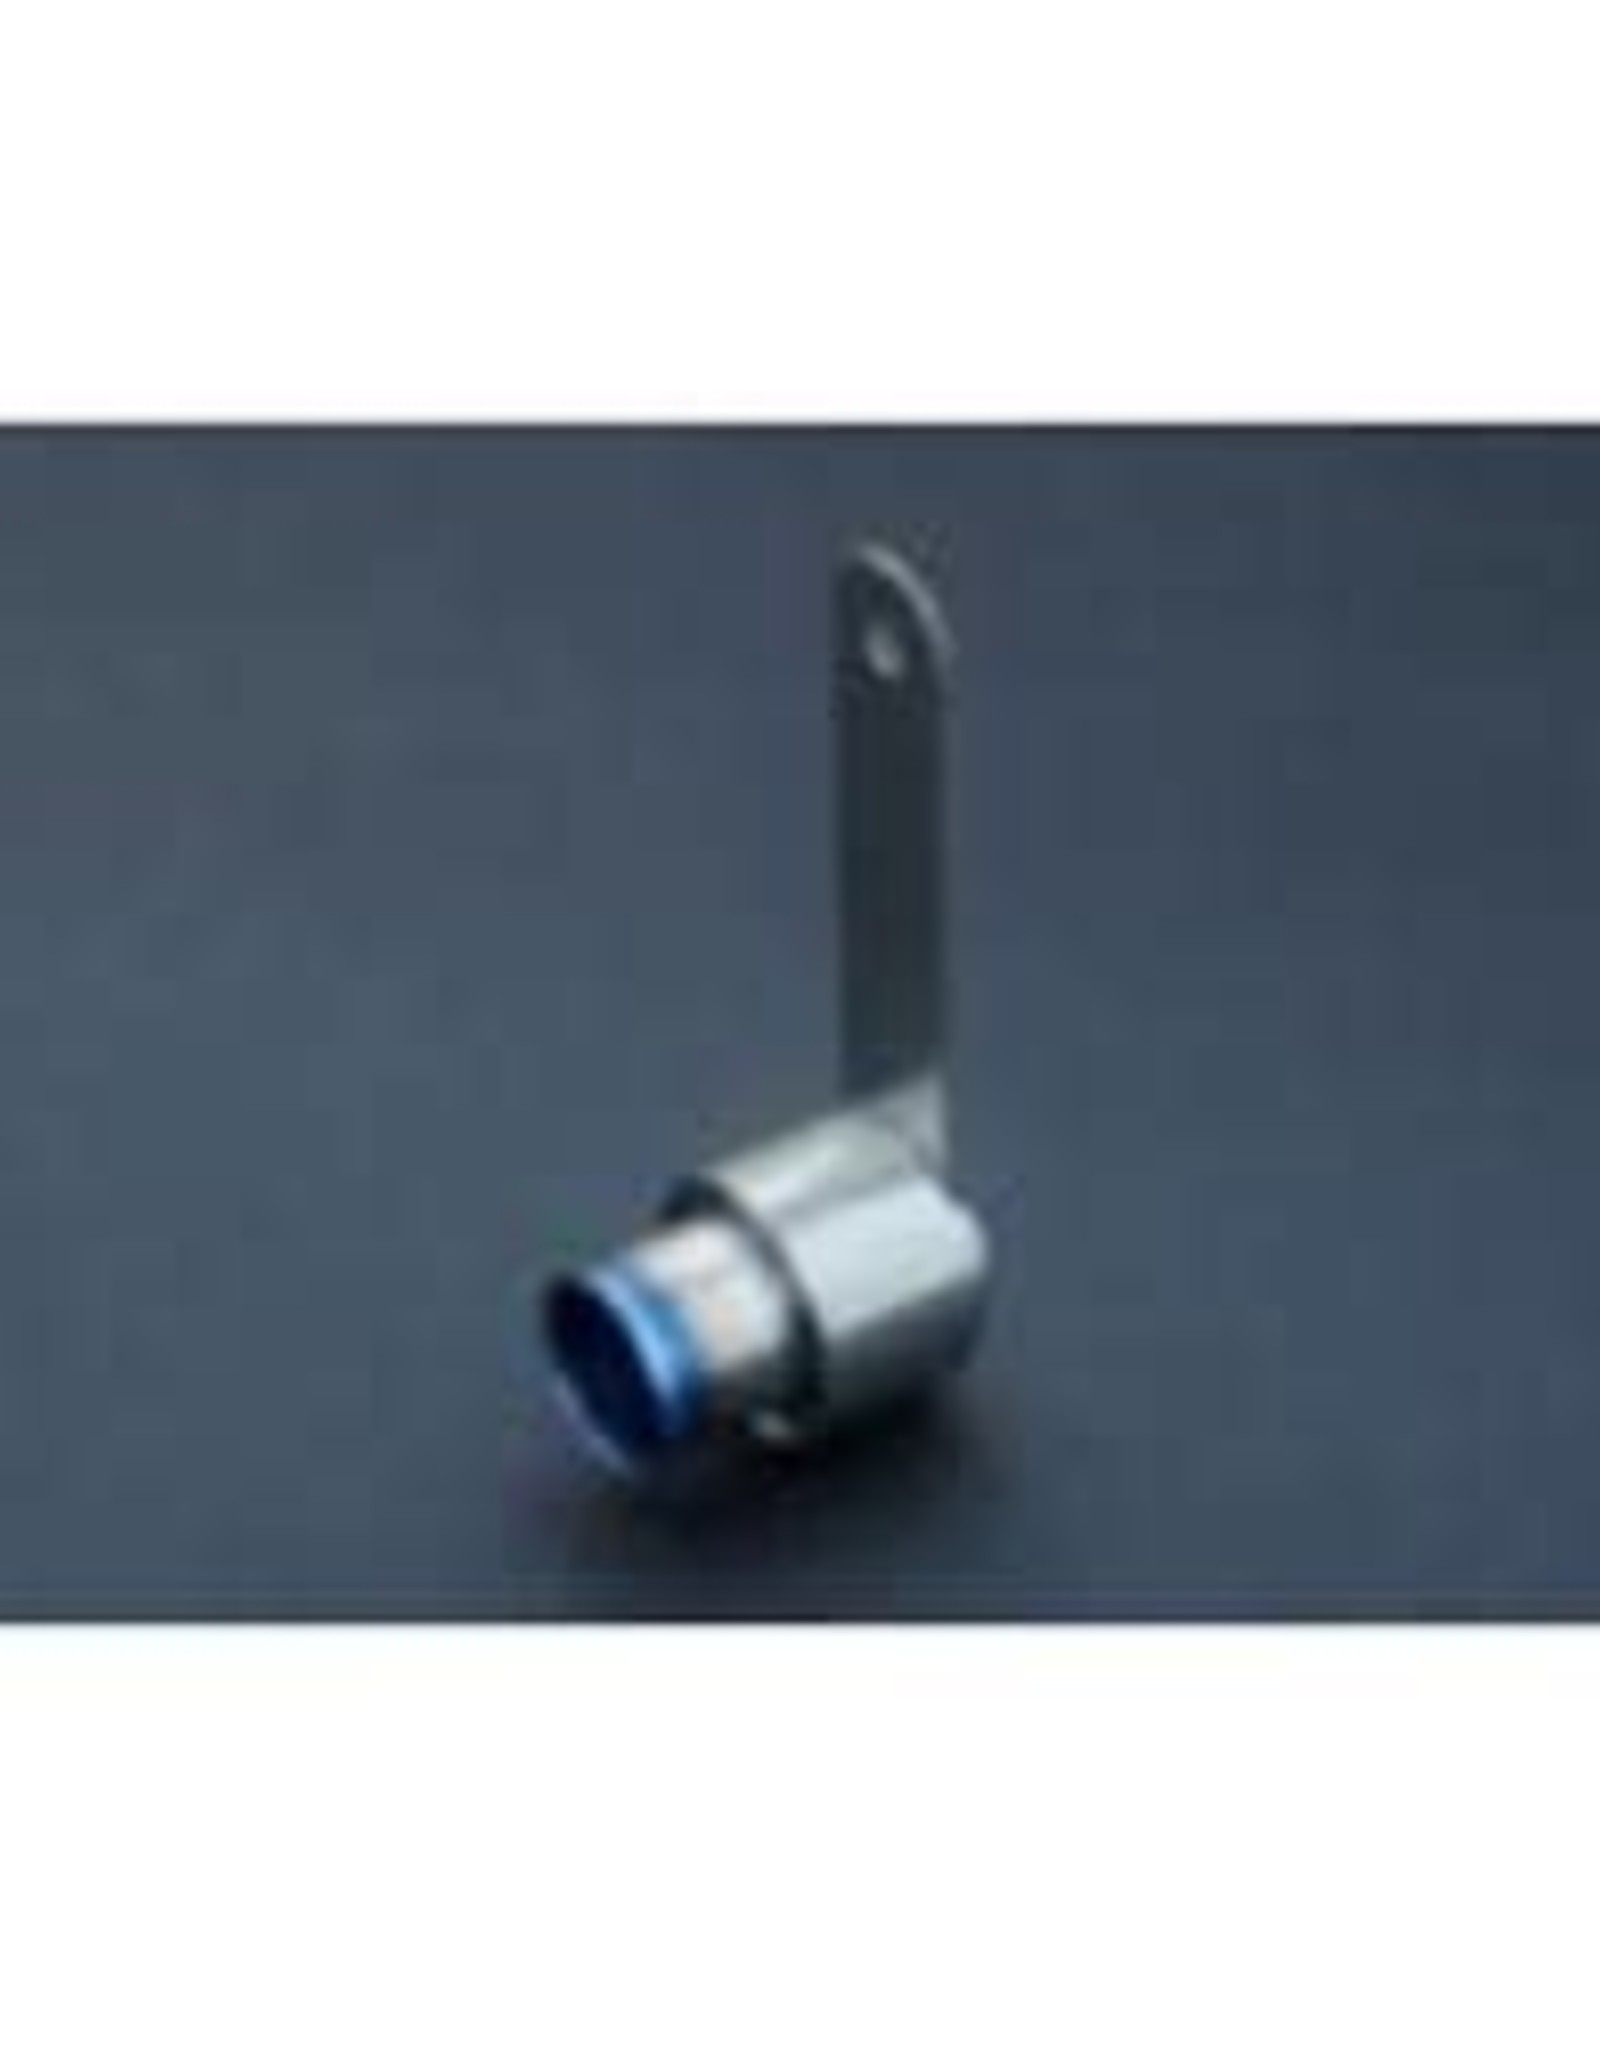 Usukani US88524B Usukani Stainless Steel Exhaust Pipe For 1/10  (For 5mm LED/Planar) Length:20mm,diameter:F/12mm,R/17mm